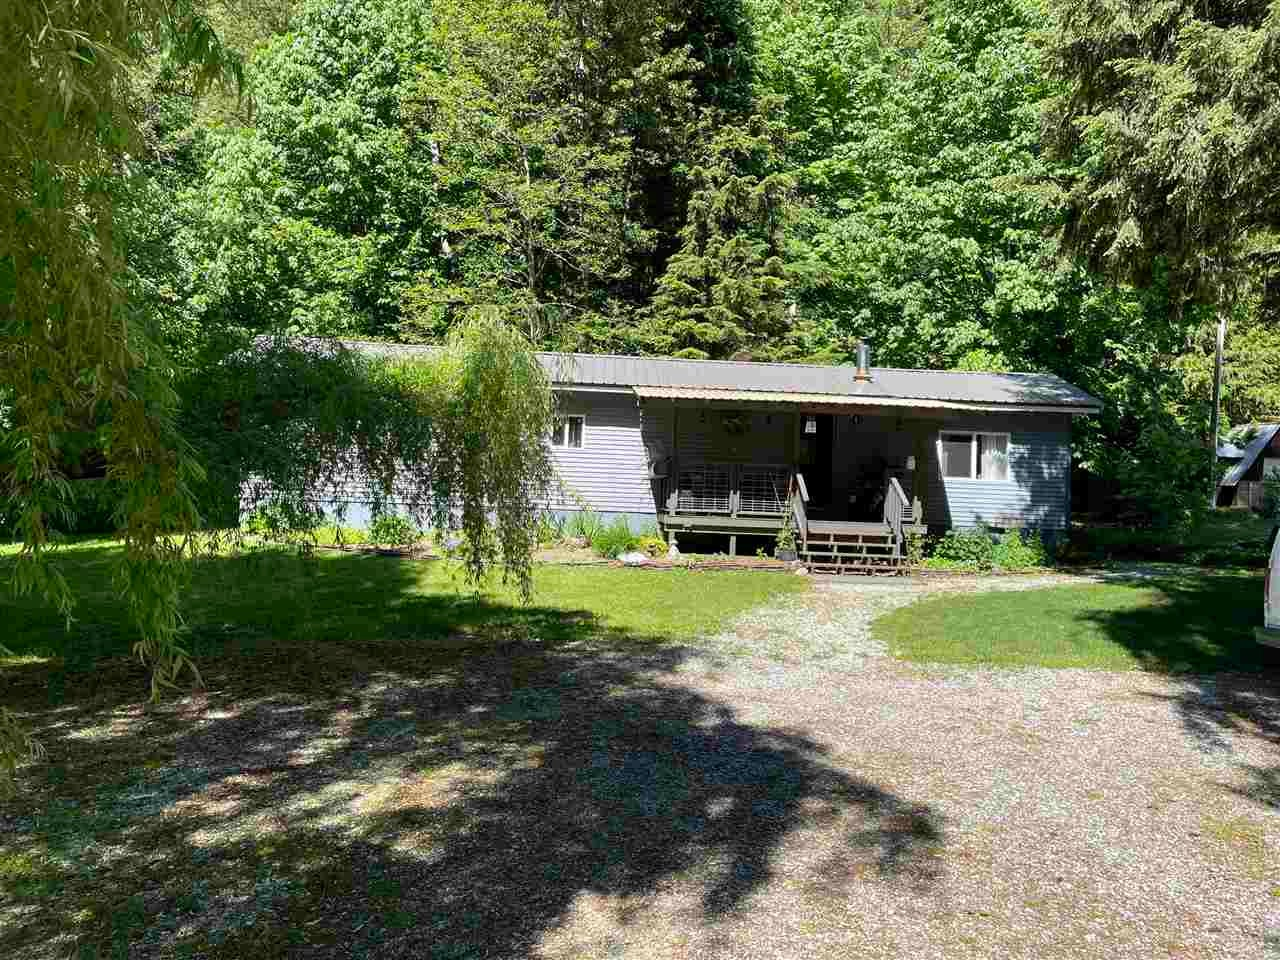 27103 DOGWOOD VALLEY ROAD - Hope Center Manufactured with Land for sale, 2 Bedrooms (R2563862) - #1